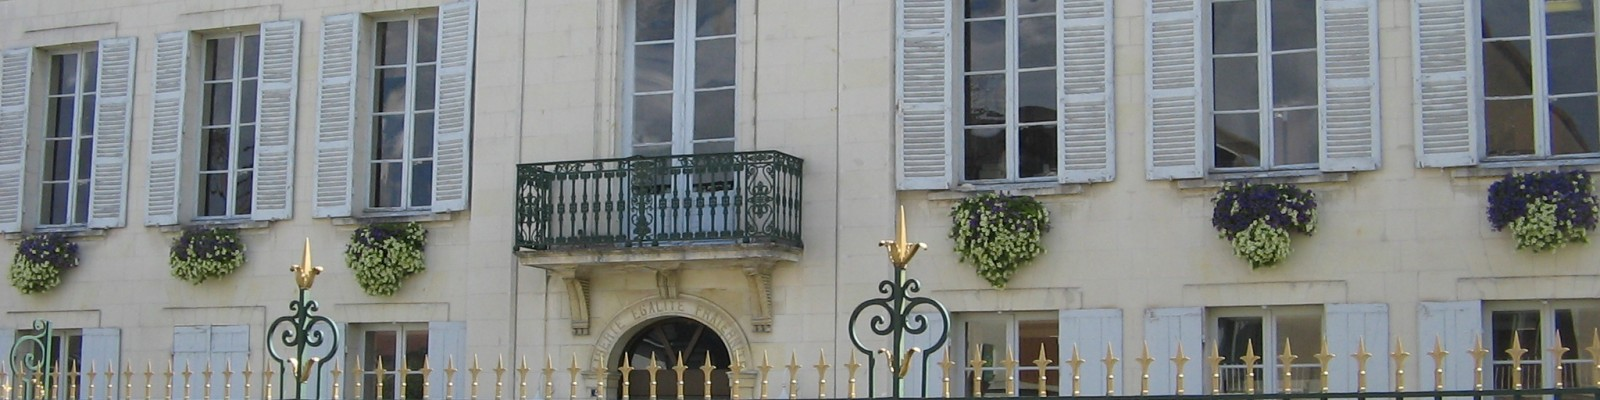 Photo de la mairie à Valençay